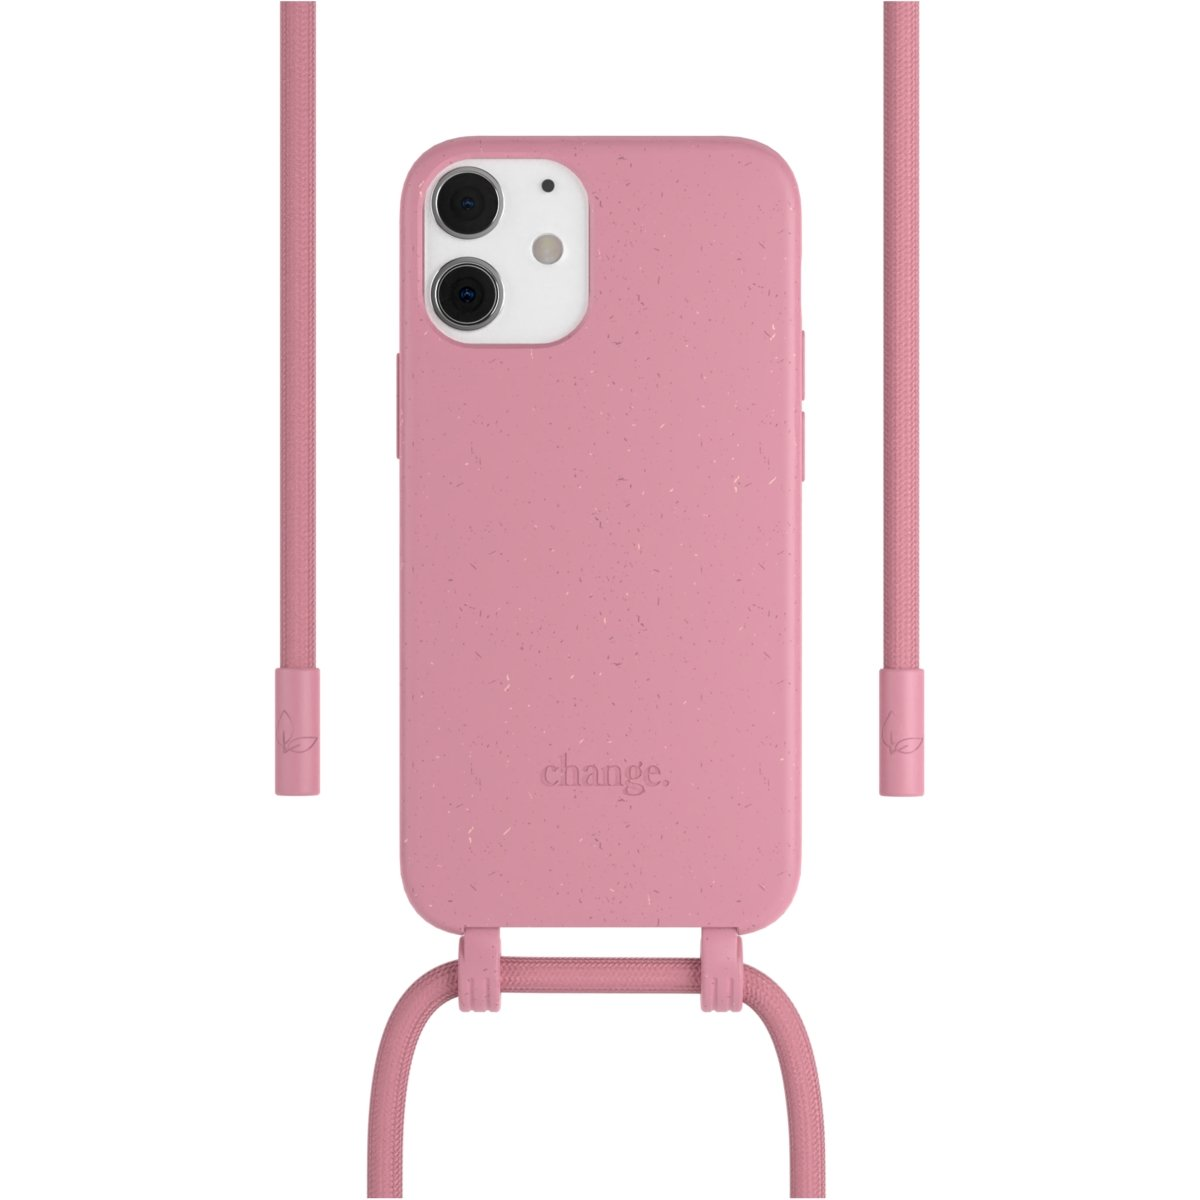 Woodcessories Change Case AM iPhone 12 Mini - pink